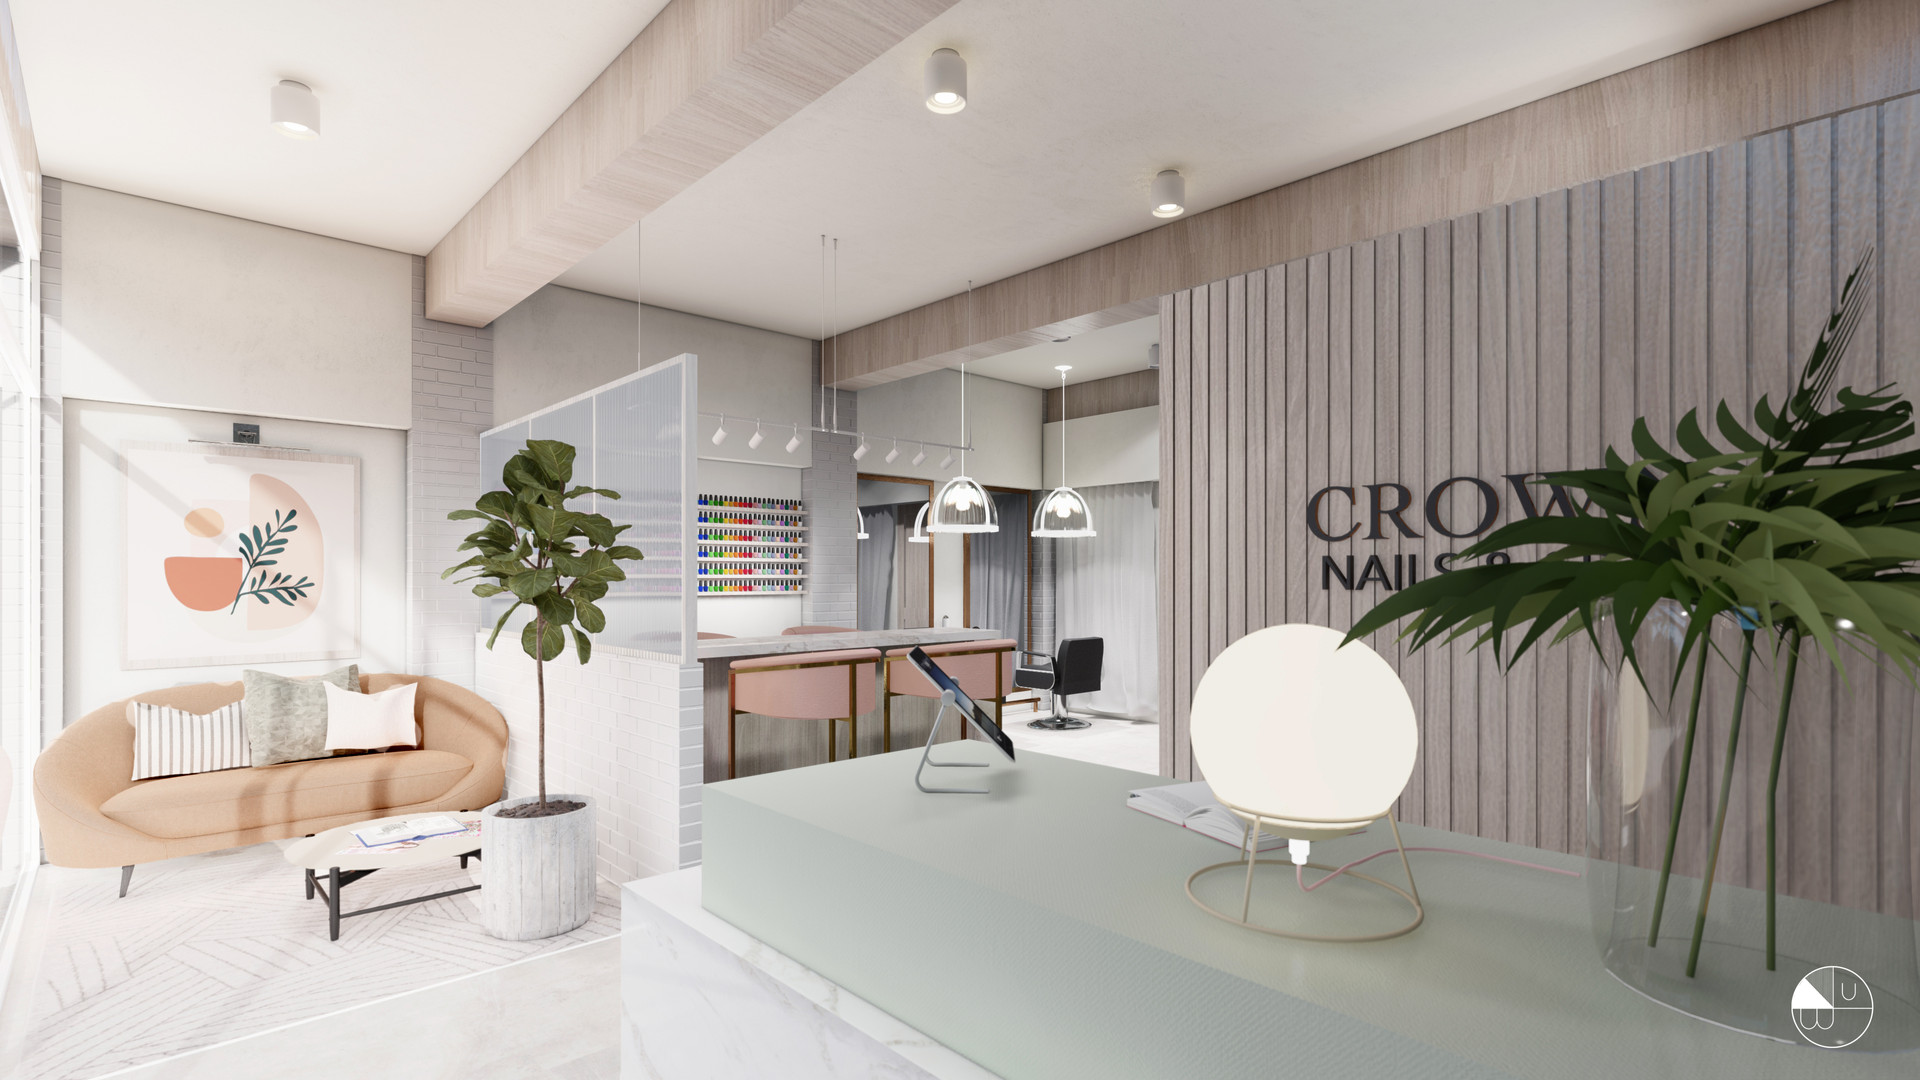 CROWN Nails & Spa - Villahermosa, México.